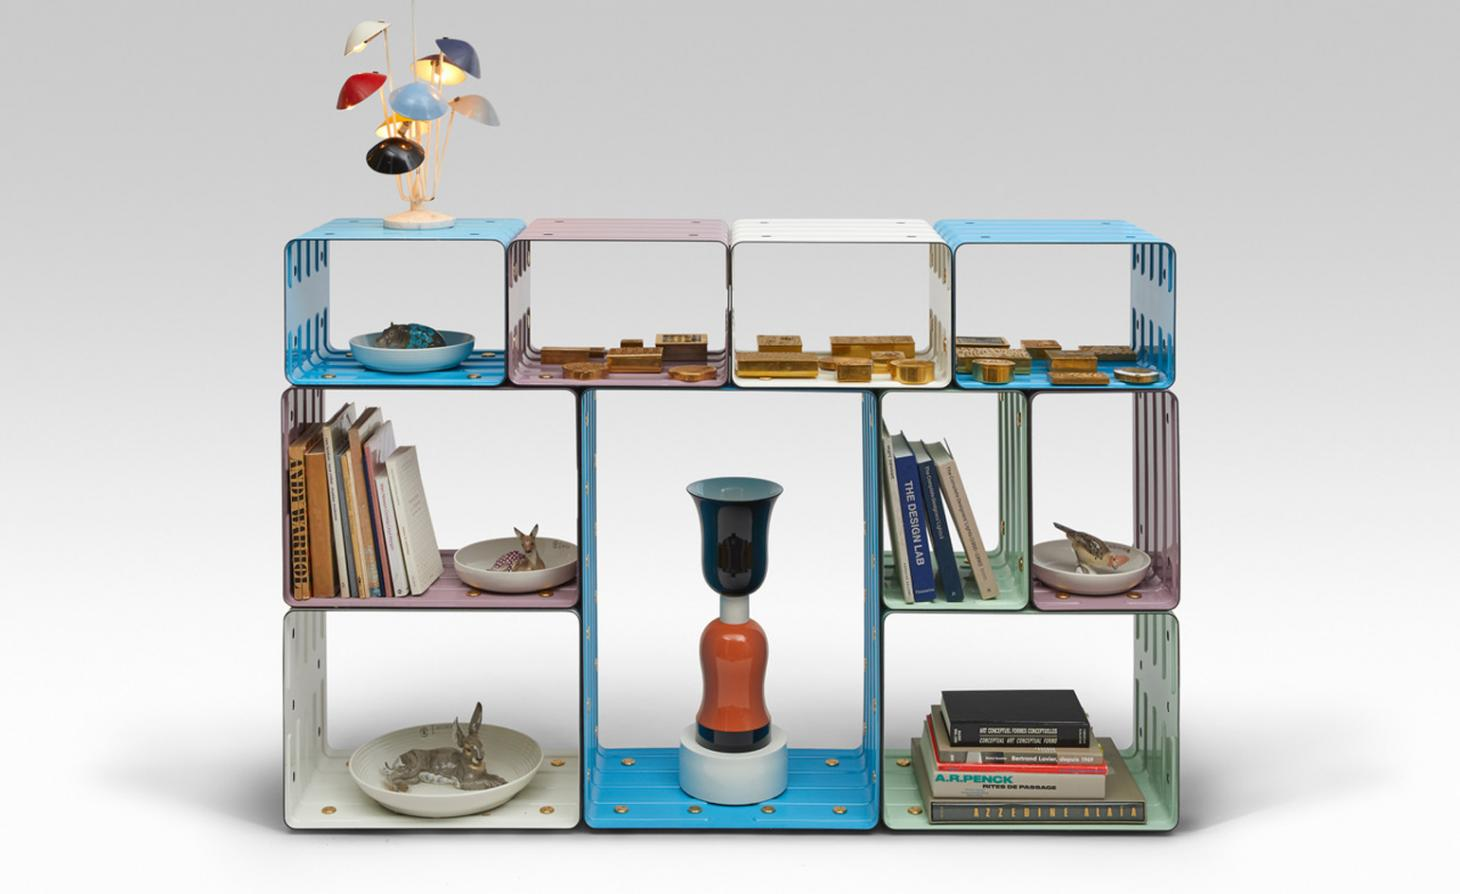 Brightly coloured shelving unit with a lamp on top